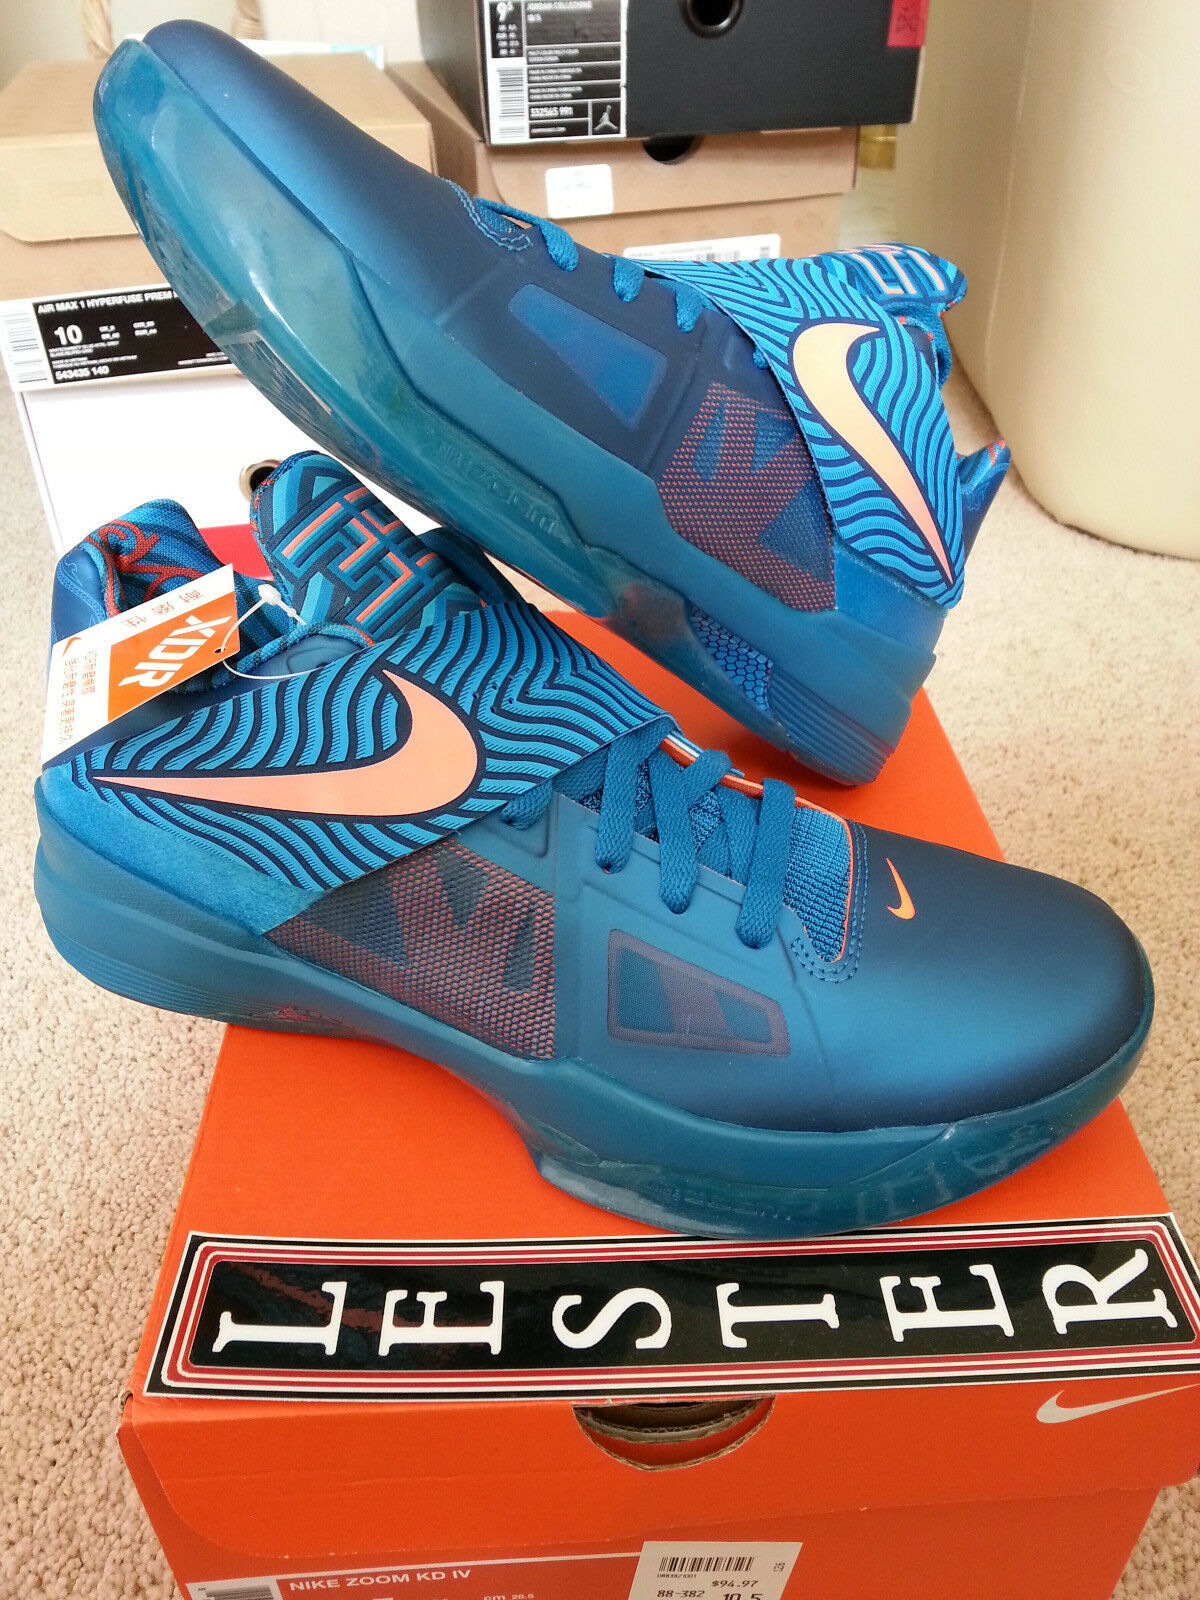 494d3102fda9 Nike Zoom KD 4 IV YOTD US 10 Kevin Durant illusion asg n7 QS air china nerf  1 of 7Only 1 available ...